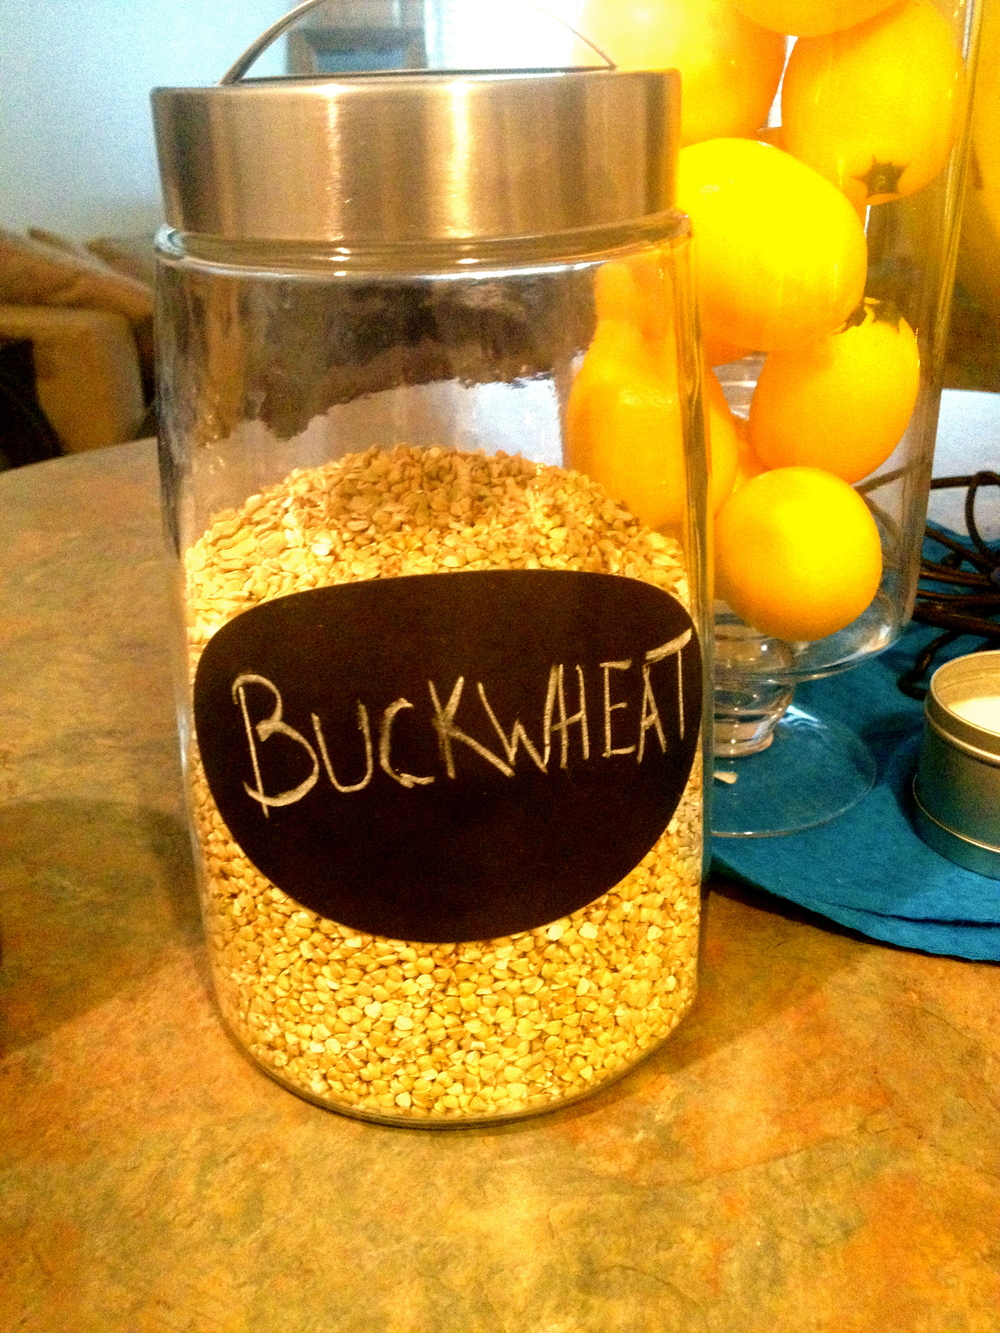 I decided my buckwheat was so important that it deserved its own jar.